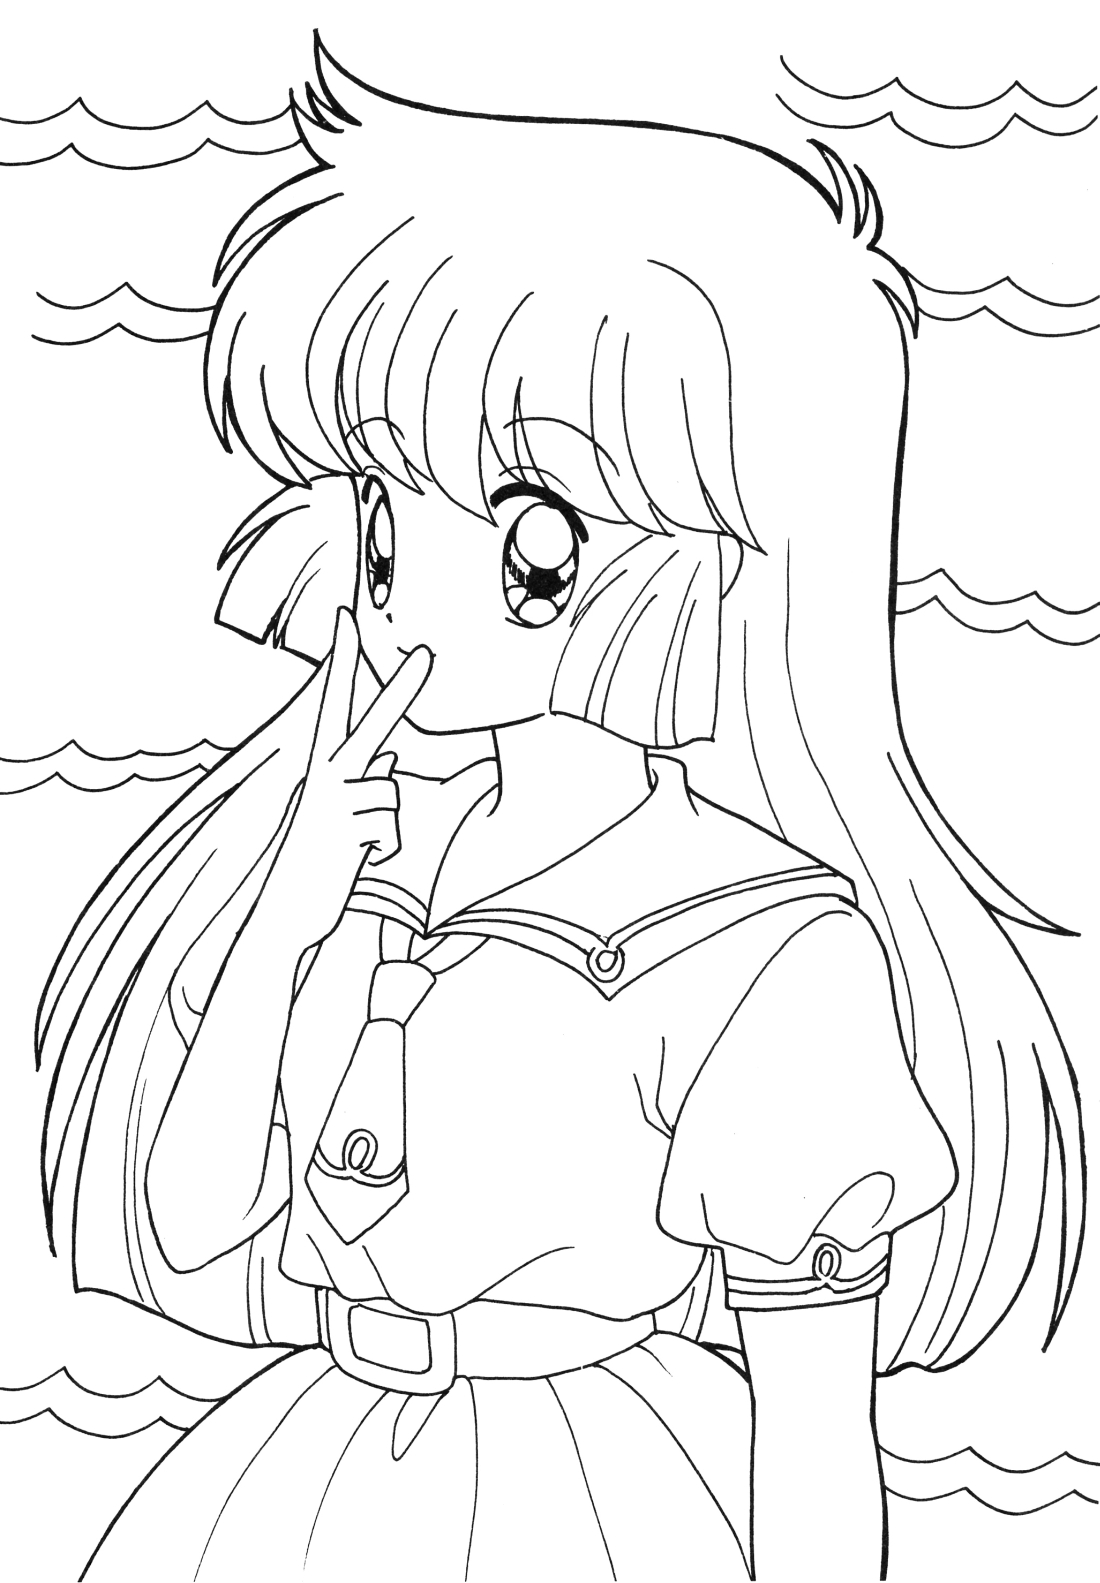 graphic regarding Printable Anime Coloring Pages called Anime Coloring Internet pages - Perfect Coloring Webpages For Young children